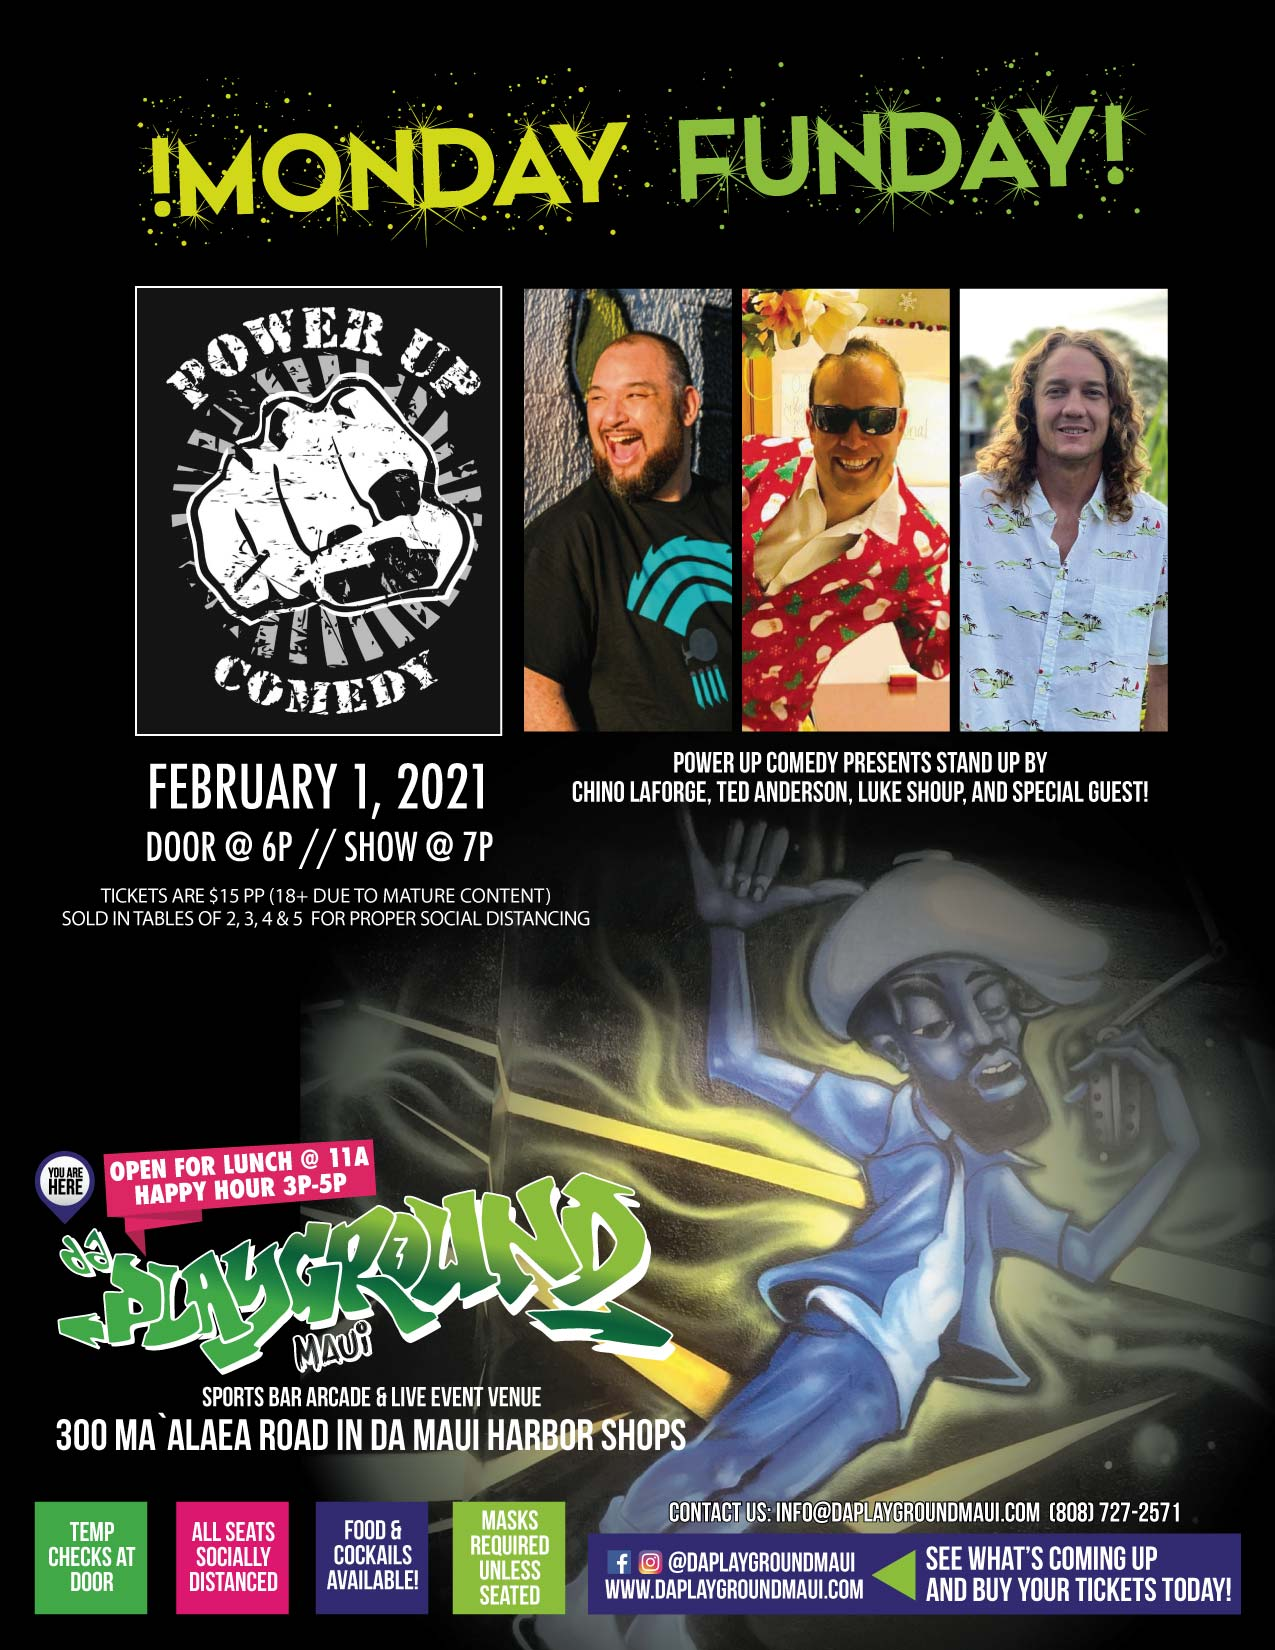 Power Up Comedy presents Stand Up Comedy featuring Chino LaForge, Ted Anderson, Luke Shoup at da playground maui